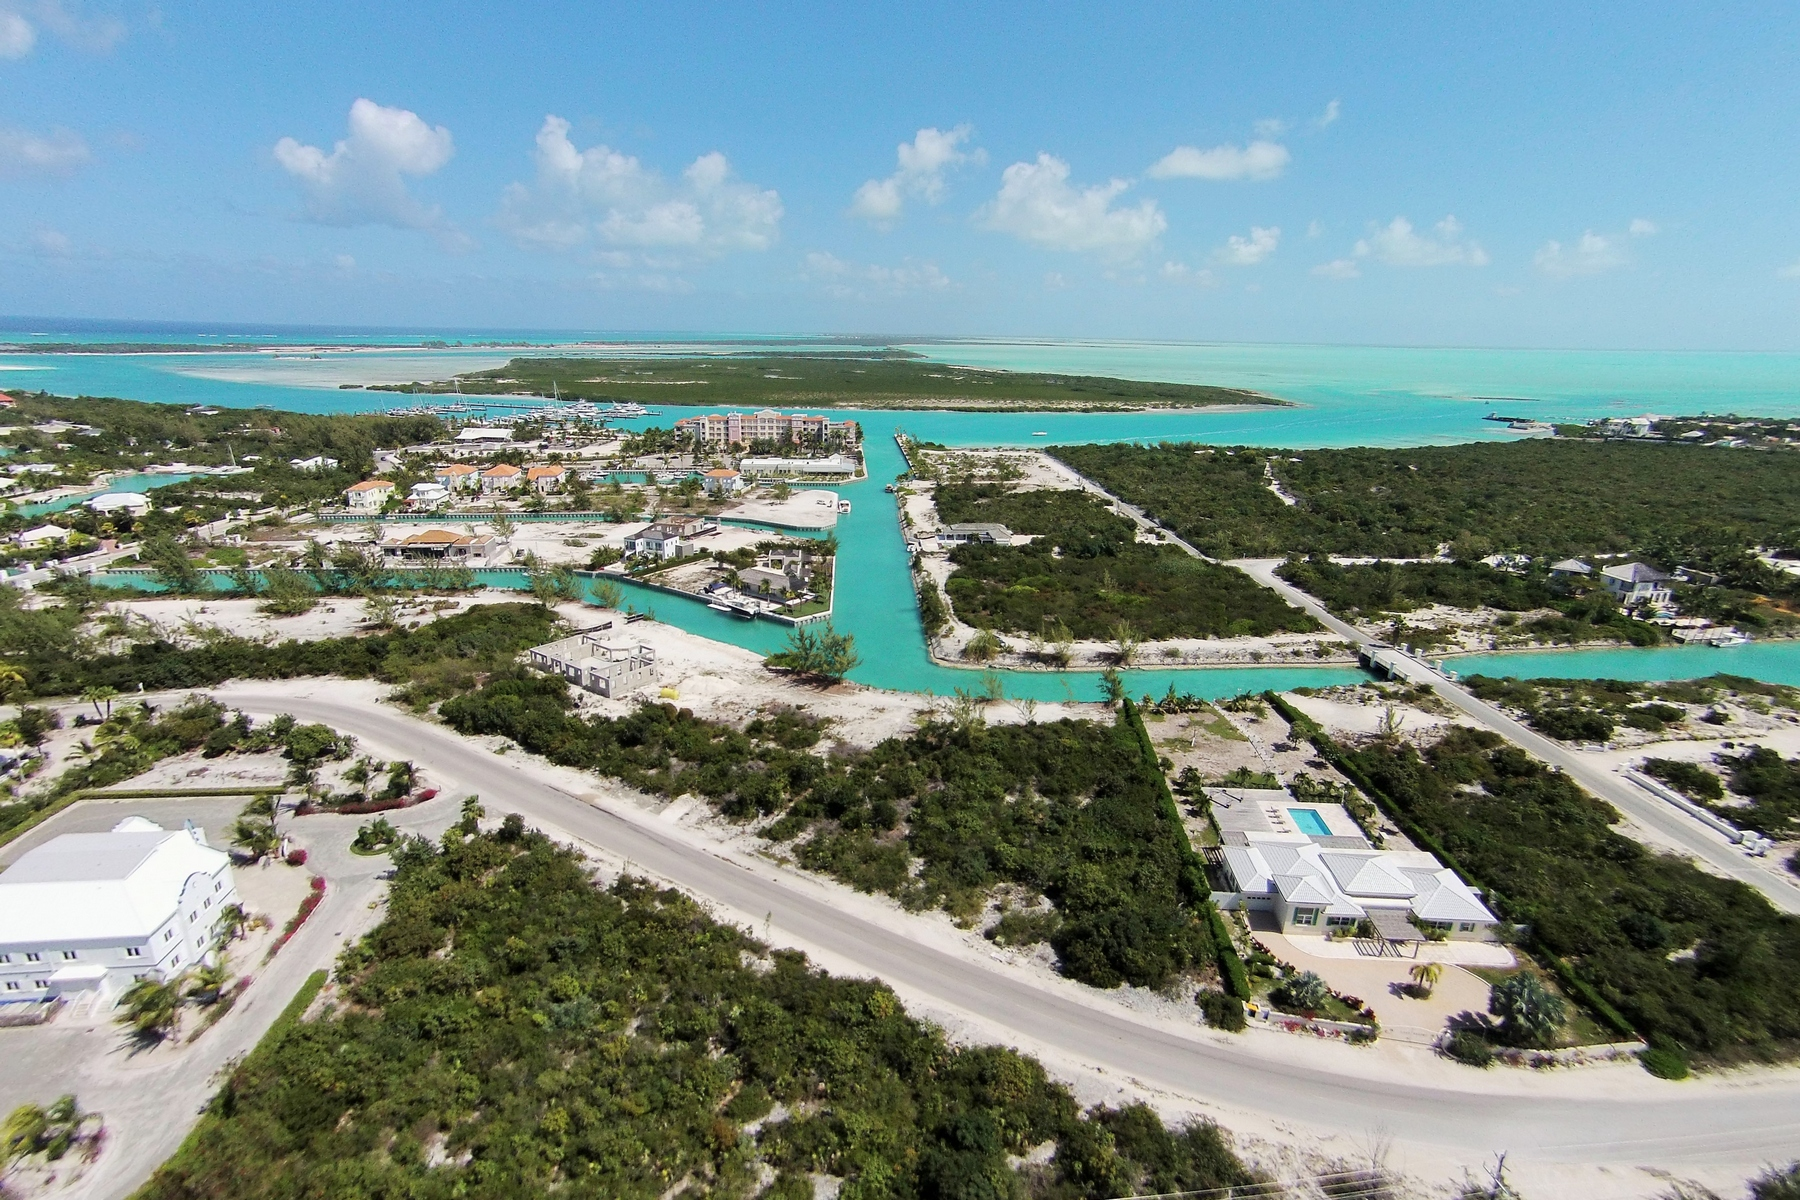 Land for Sale at Leeward Canalfront Lot Leeward, Providenciales Turks And Caicos Islands